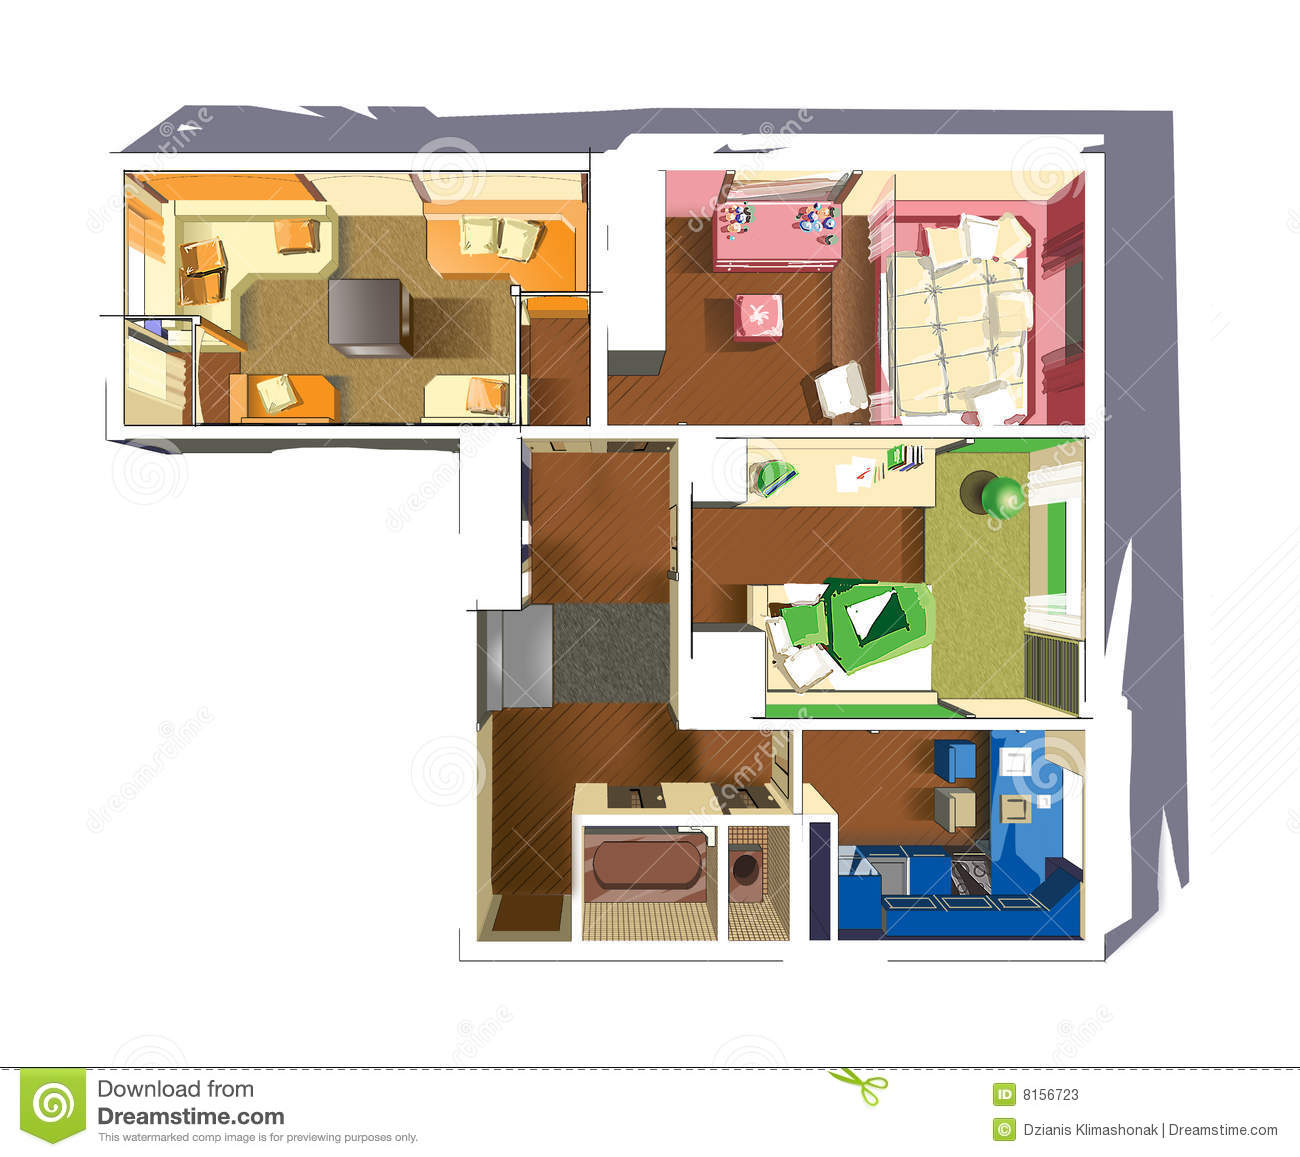 Plan of apartment stock photos image 8156723 for Apartment stock plans